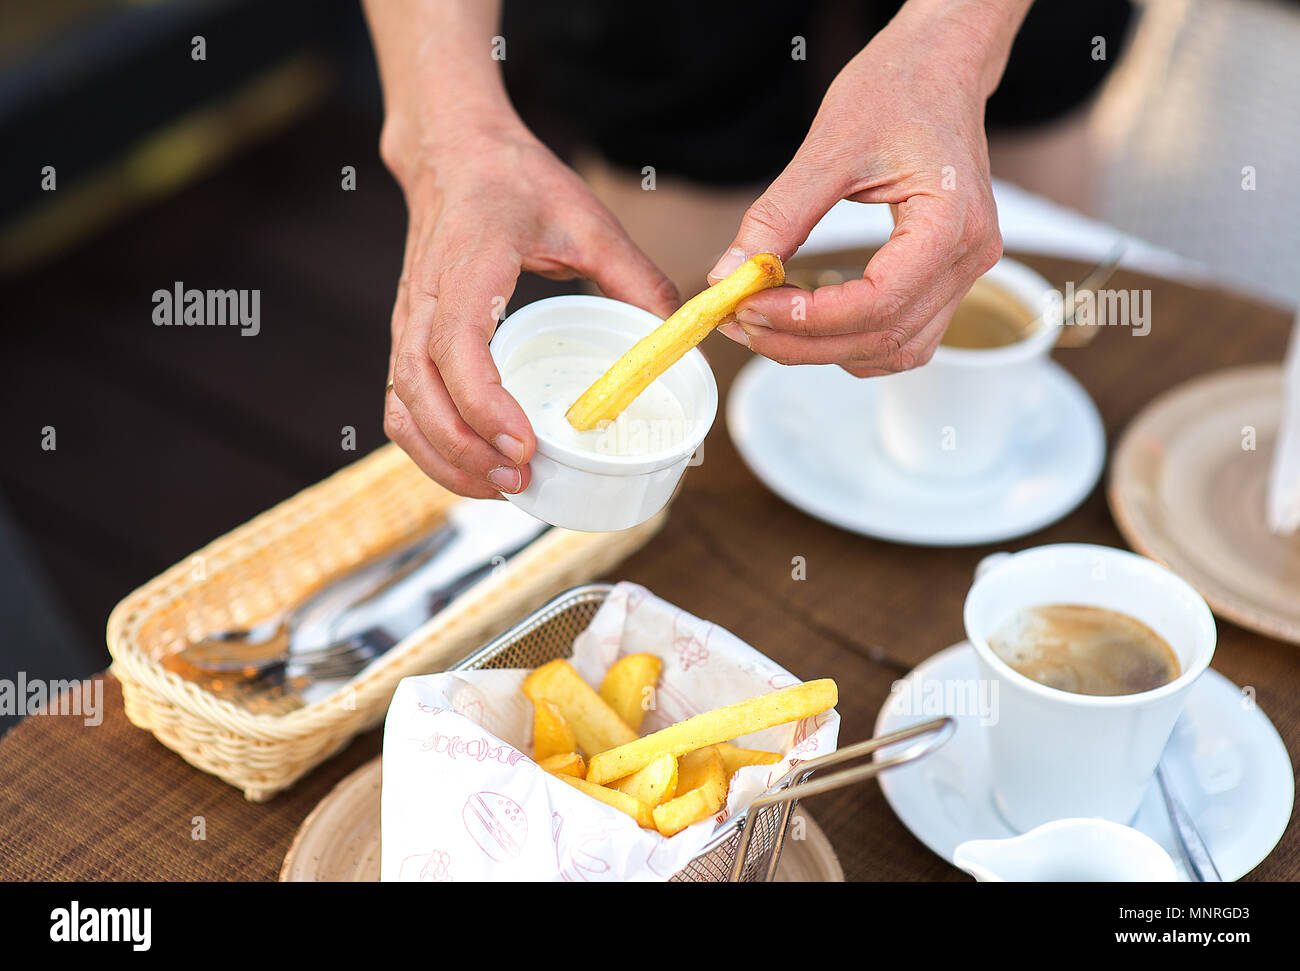 fresh french fries - Stock Image